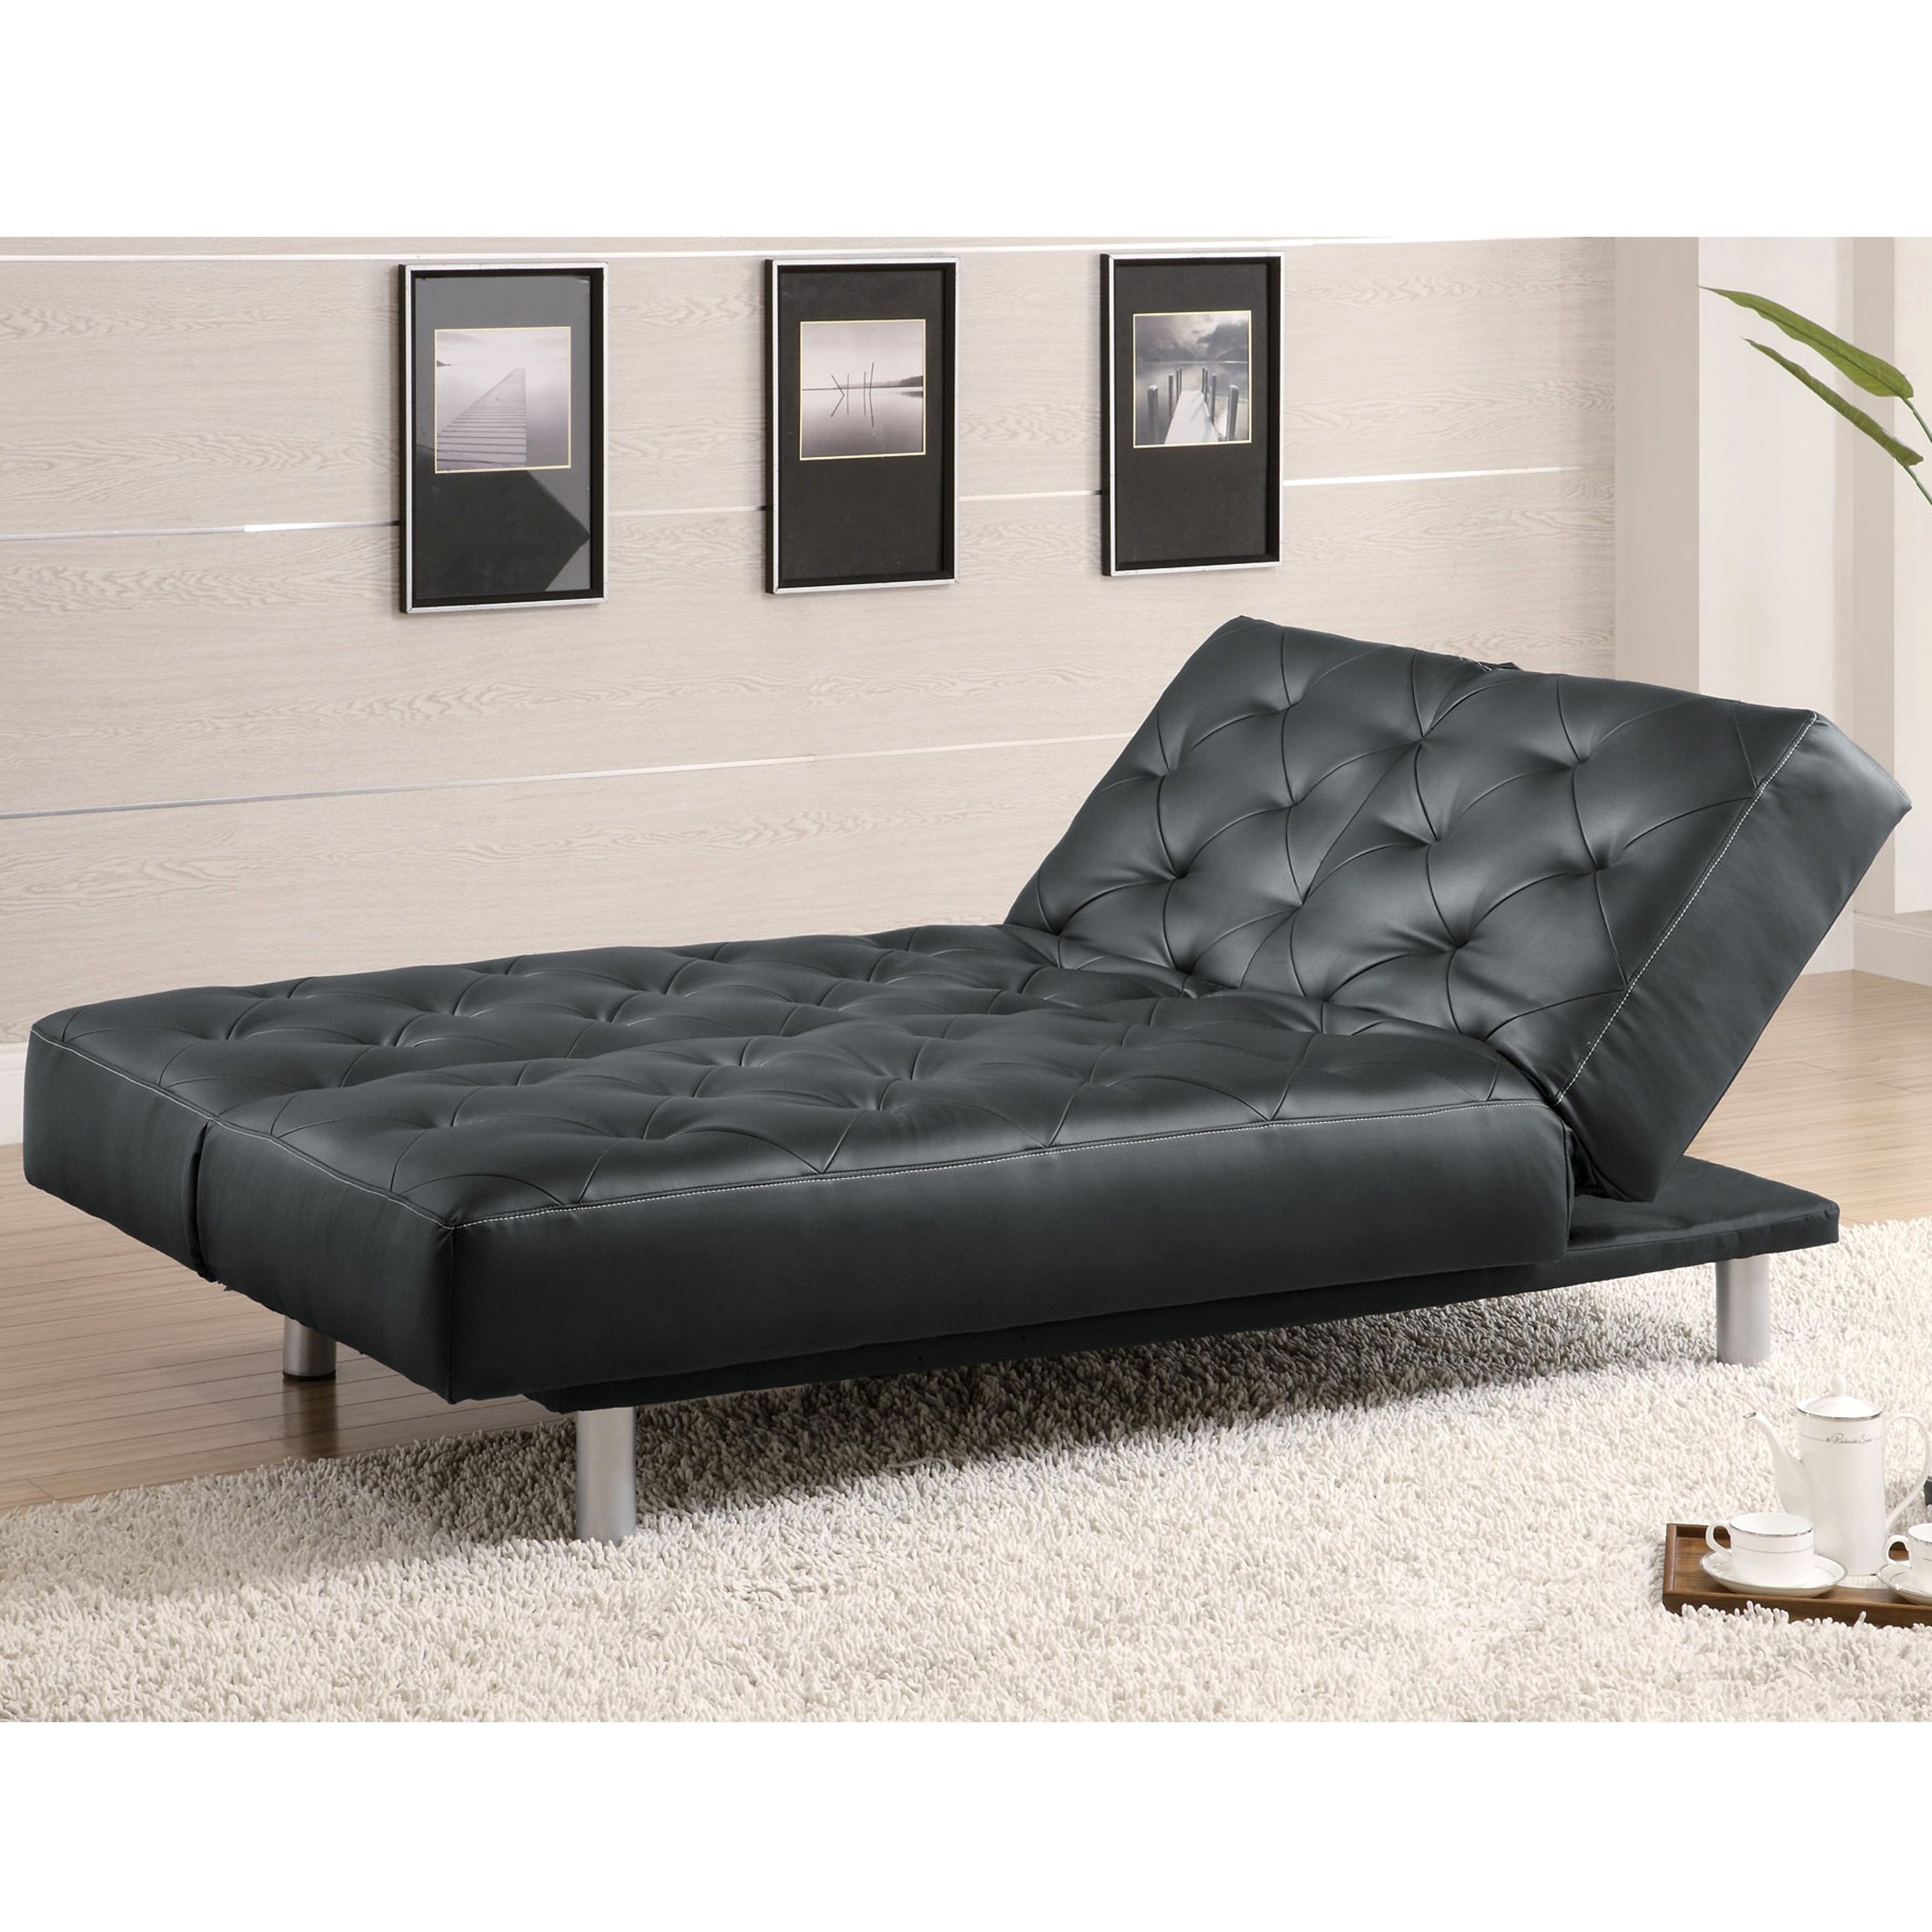 Devine Tufted Design Convertible Chaise Sofa Bed Free Shipping Today 13210341